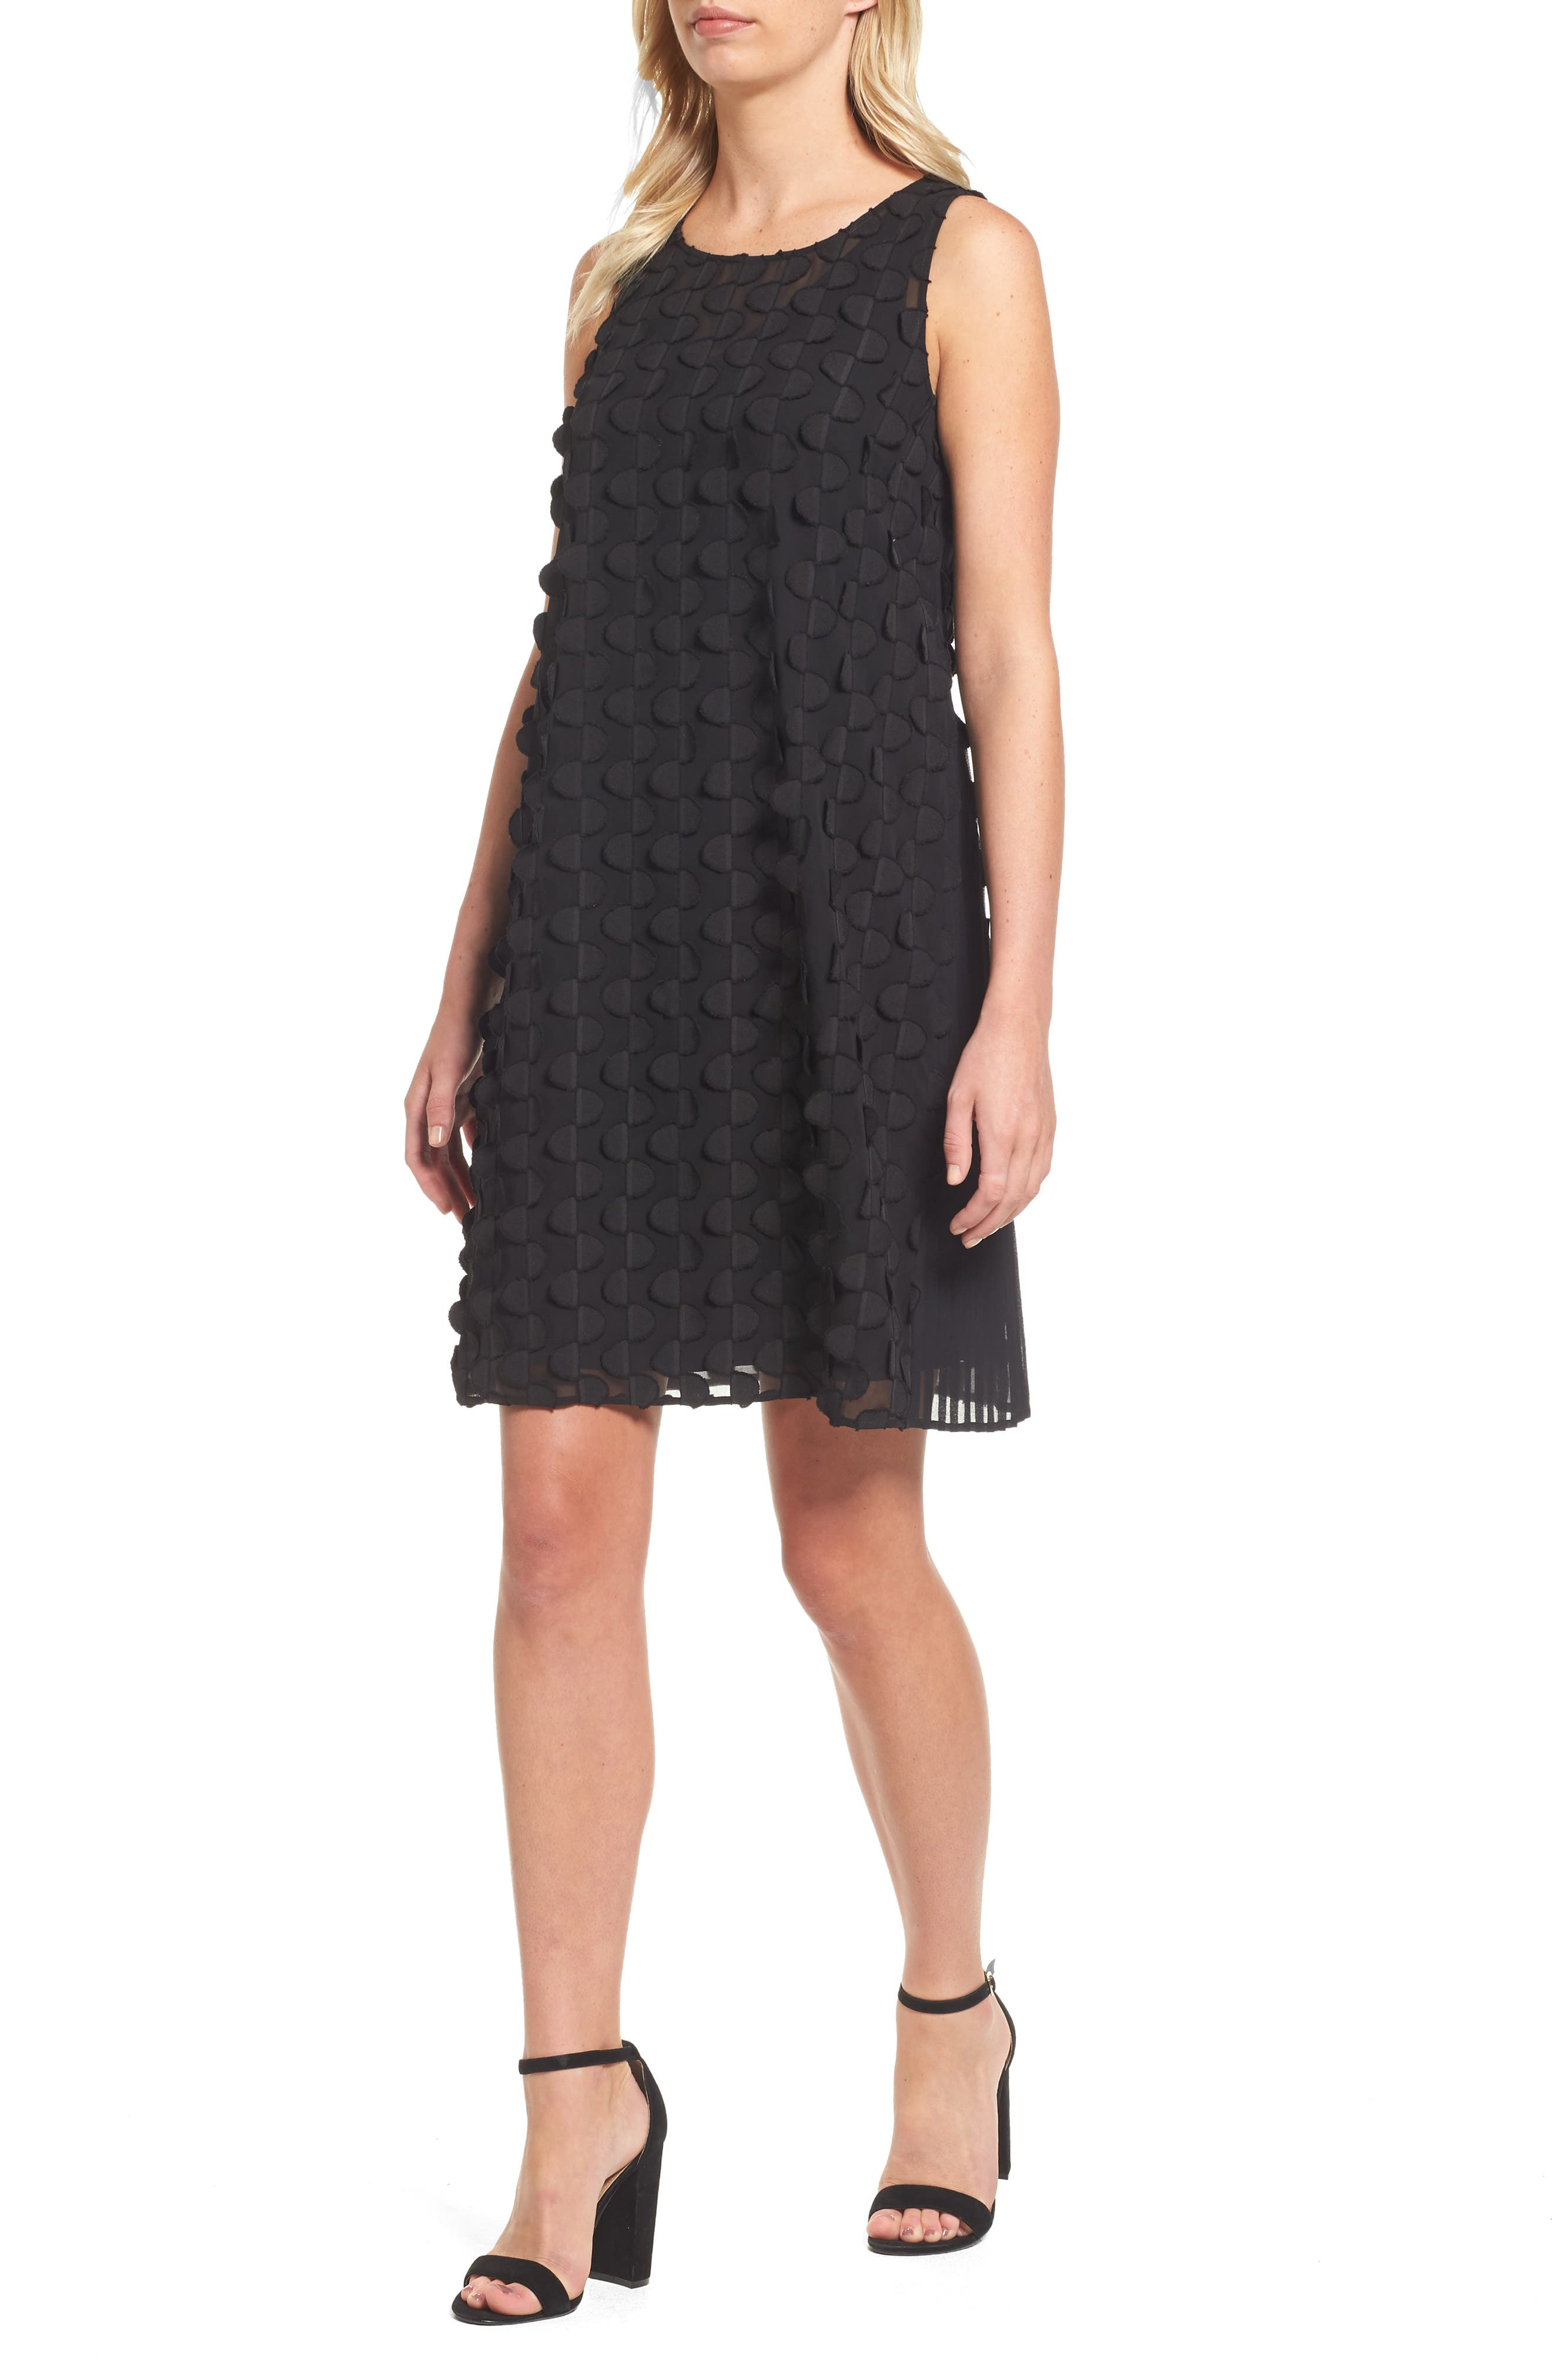 Nic + Zoe Showtime Shift Dress,                         Main,                         color, 004